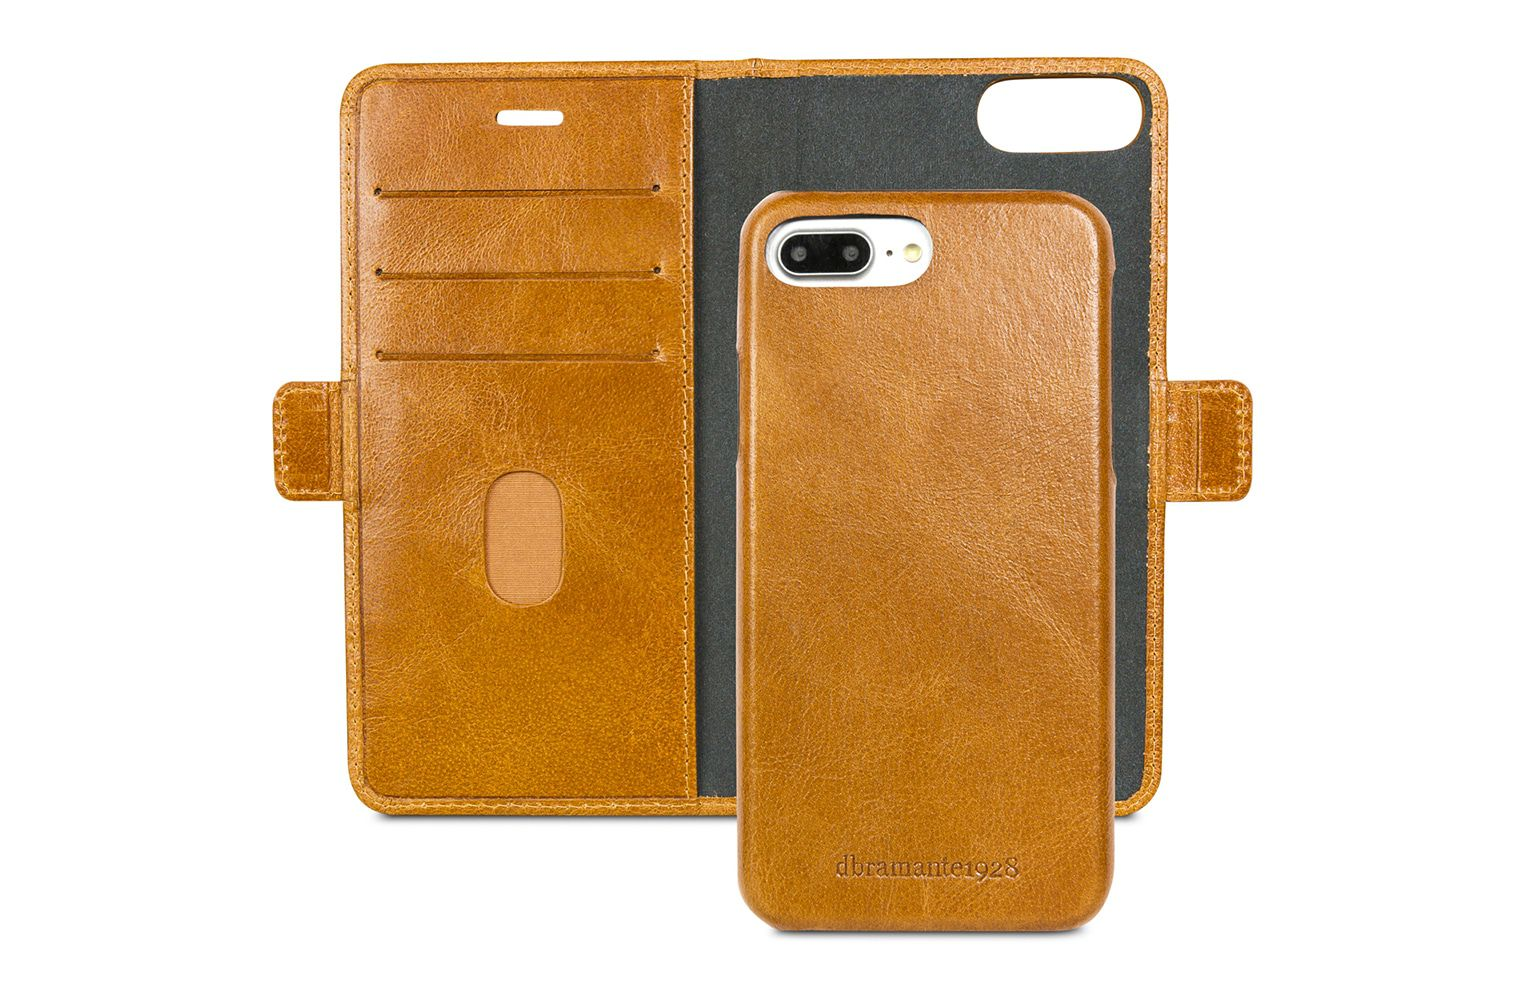 dbramante1928 Lynge Leather Wallet iPhone 8/7/6 Plus hoesje Tan